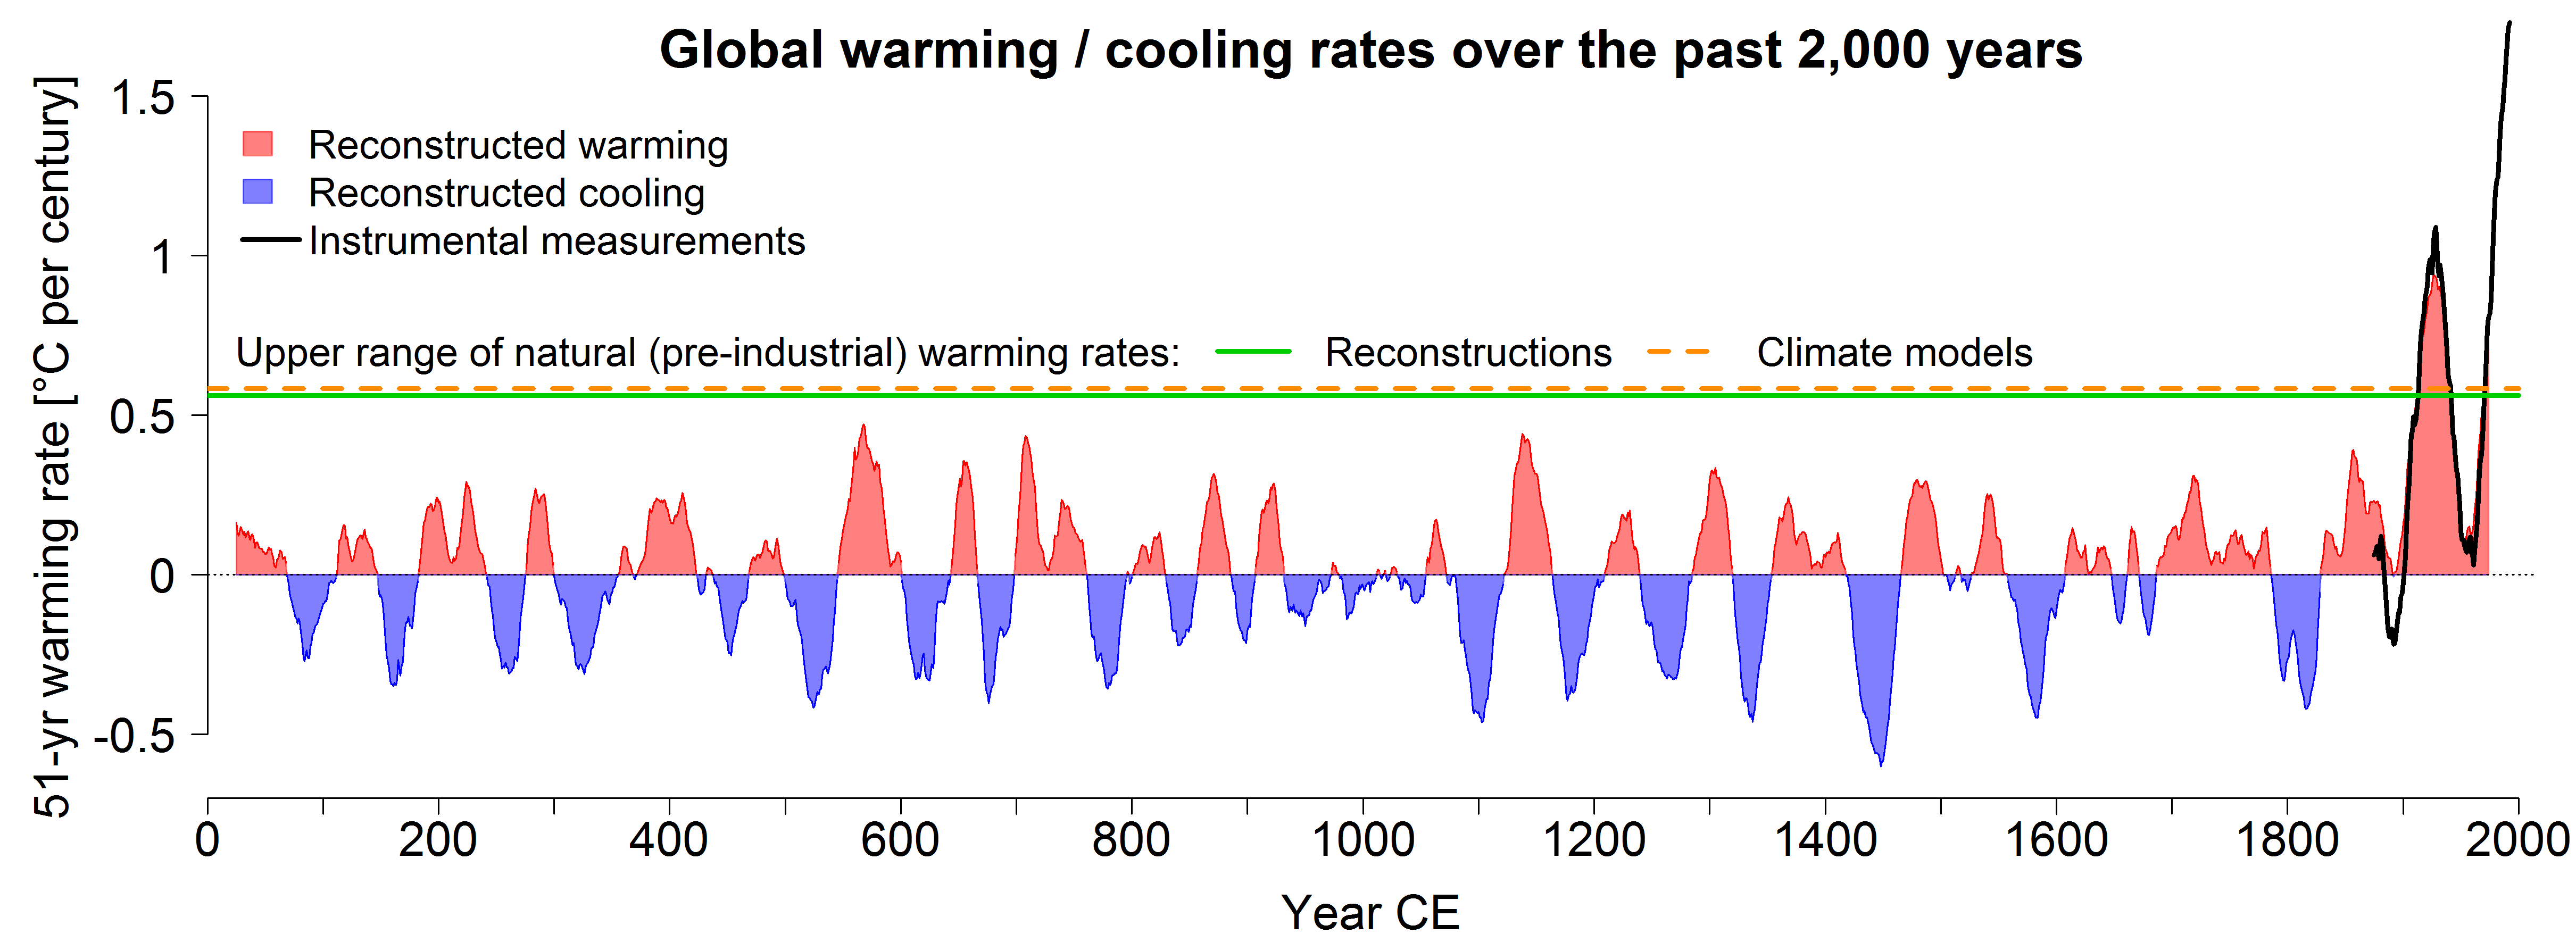 Global mean warming / cooling rates over the last 2,000 years. In red are the periods (each across 51 years) in which the reconstructed temperatures increased. Global temperatures decreased in the periods in blue. The green line shows that the maximum expected warming rate without anthropogenic influence is just under 0.6 degrees per century. Climate models (dashed orange line) are able to simulate this natural upper limit very well. At more than 1.7 degrees per century, the current rate of warming is significantly higher than the expected natural rate of warming, and higher than values for every previous century. Instrumental measurements since 1850 (in black) confirm these figures. © University of Bern